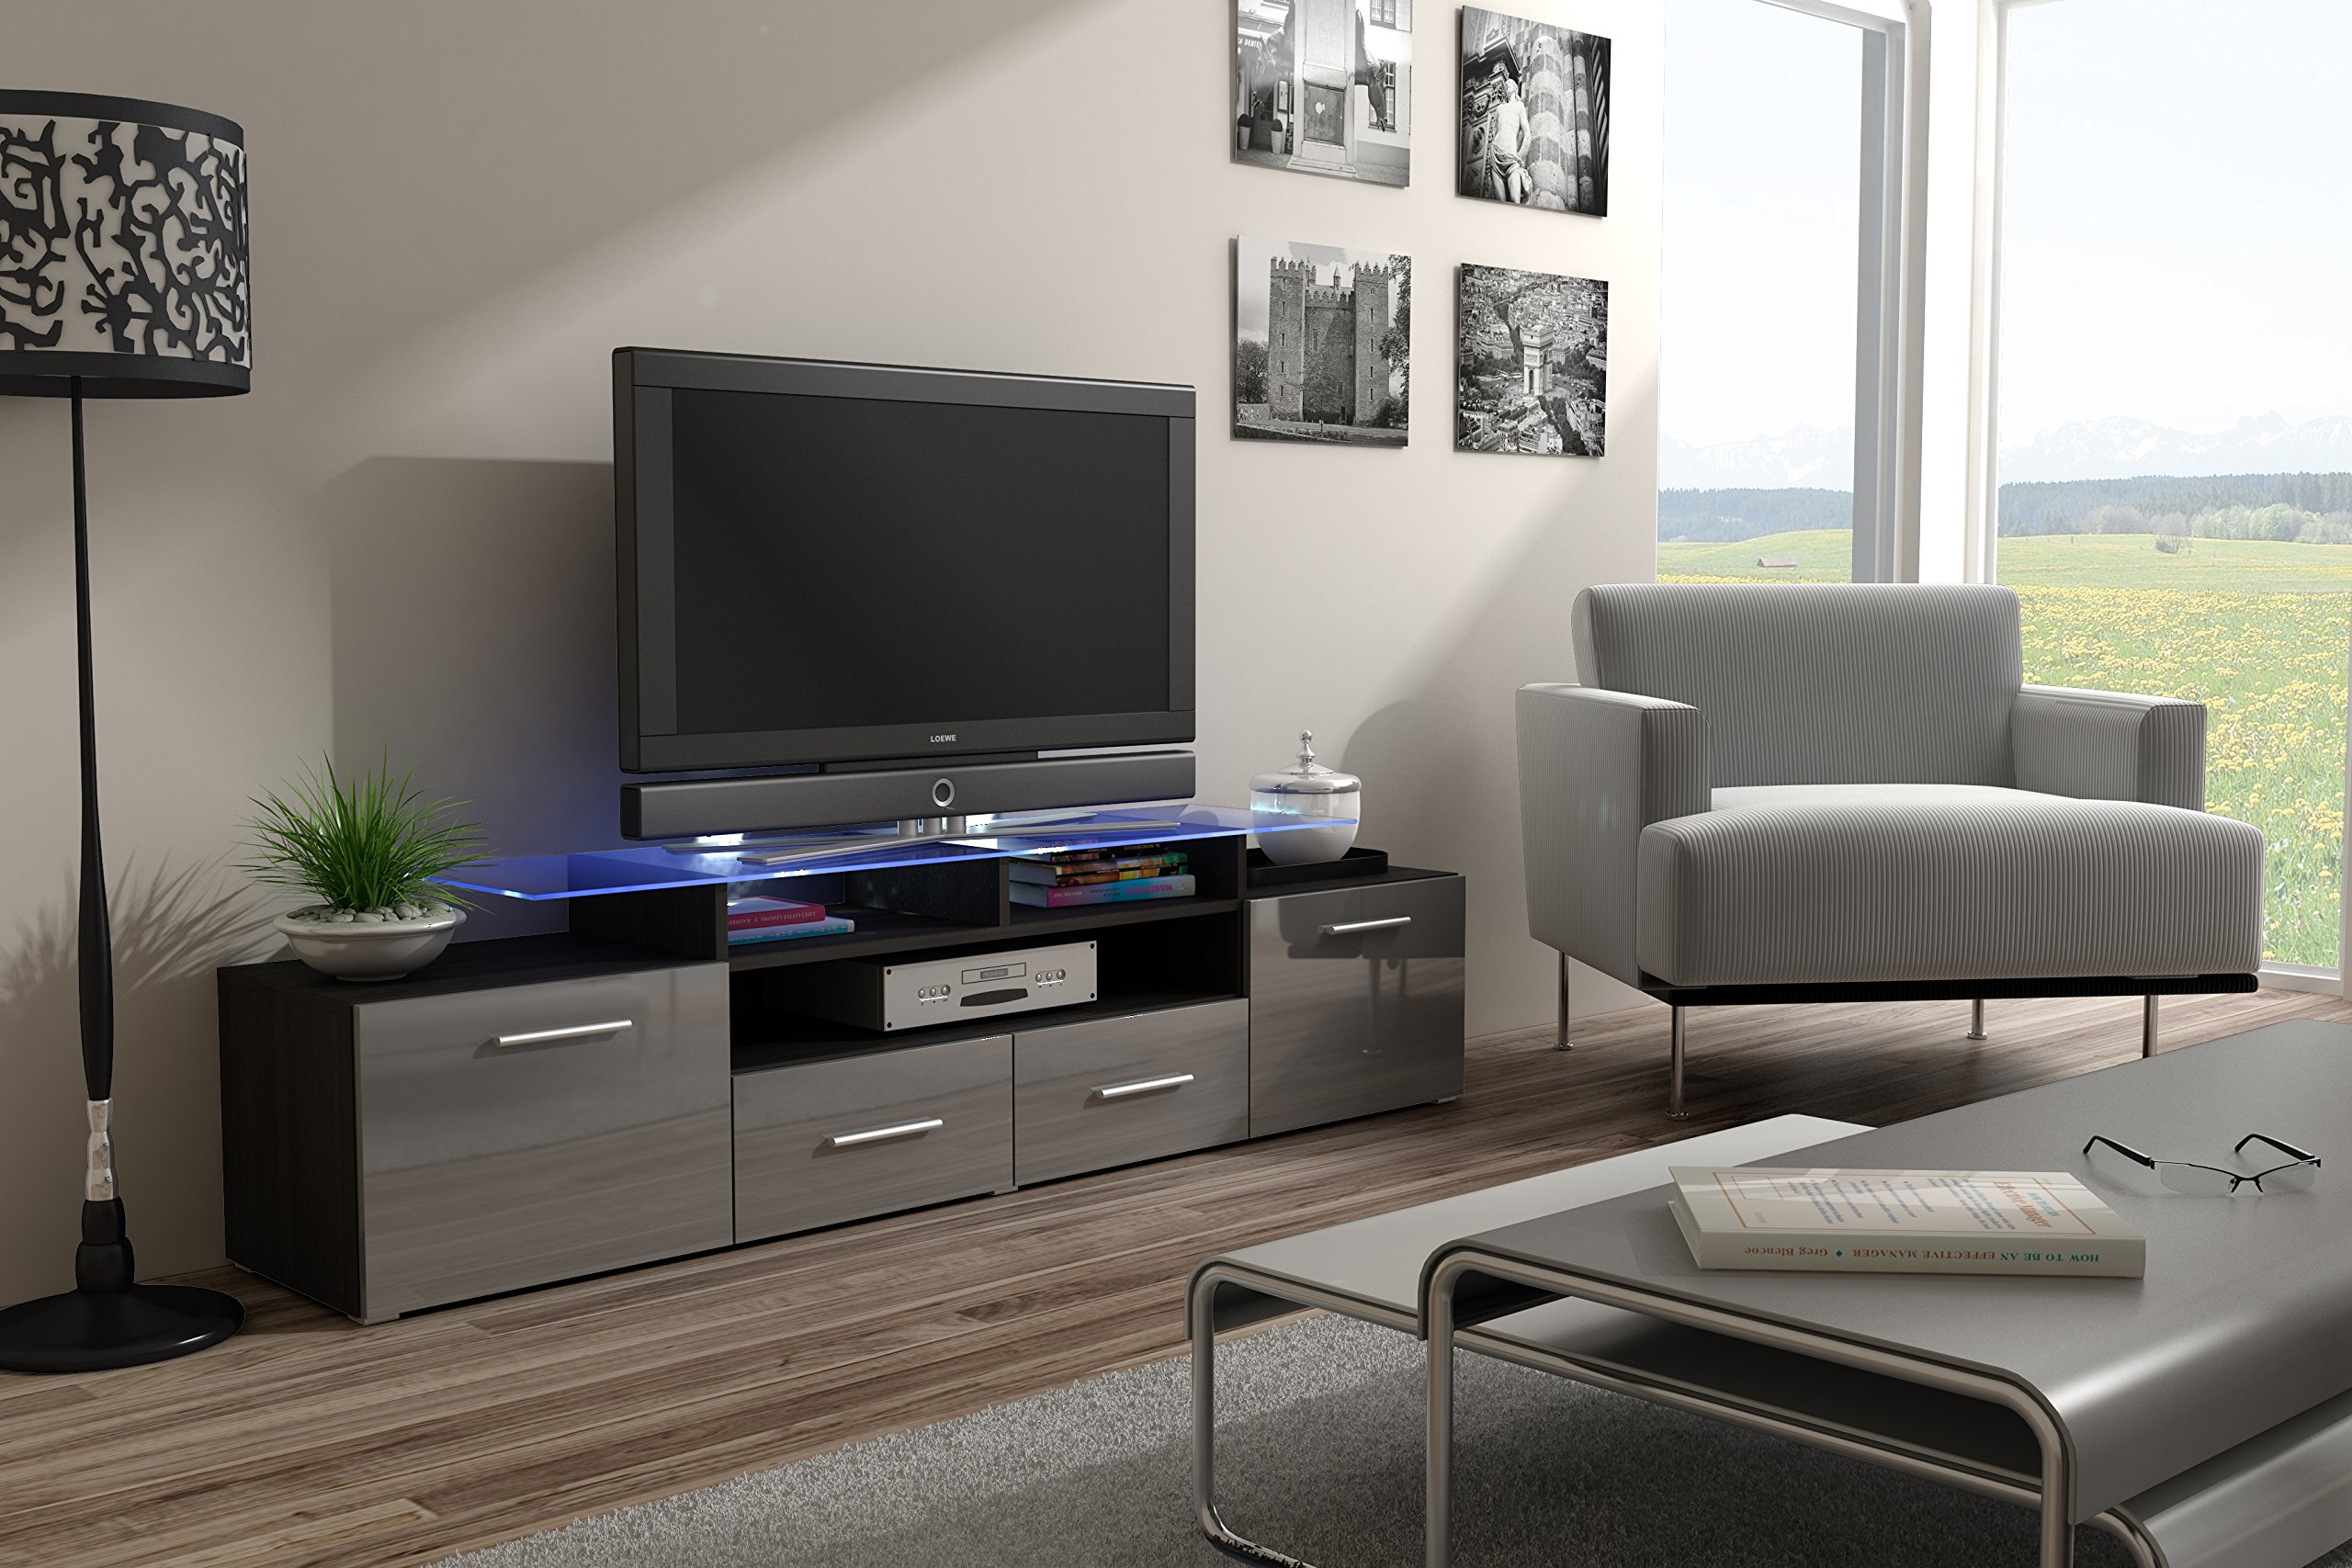 ENEA GRAND with top Glass Shelf Tv Stand - High Gloss Tv Cabinet / Design Furniture / Central Tv Unit (Wengue & Grey)